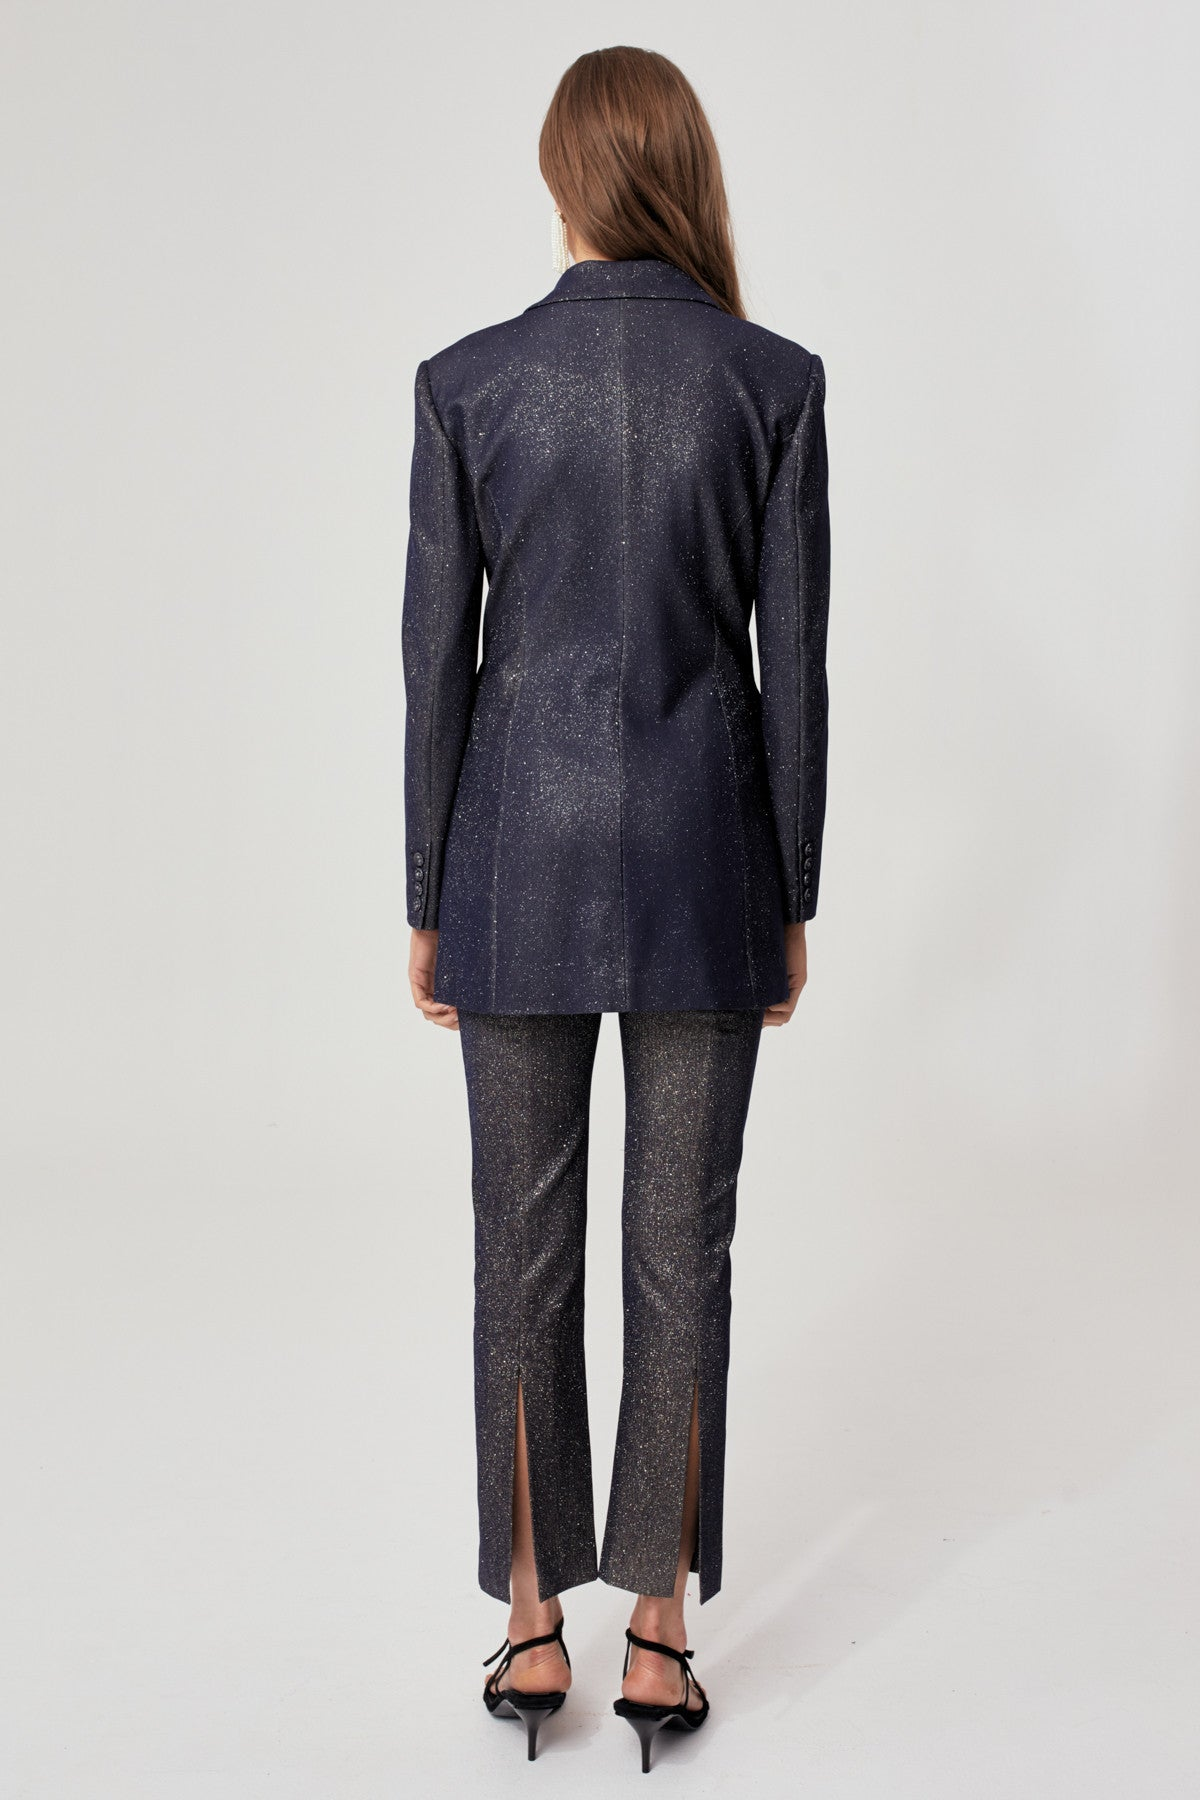 BY NIGHT PANT navy metallic